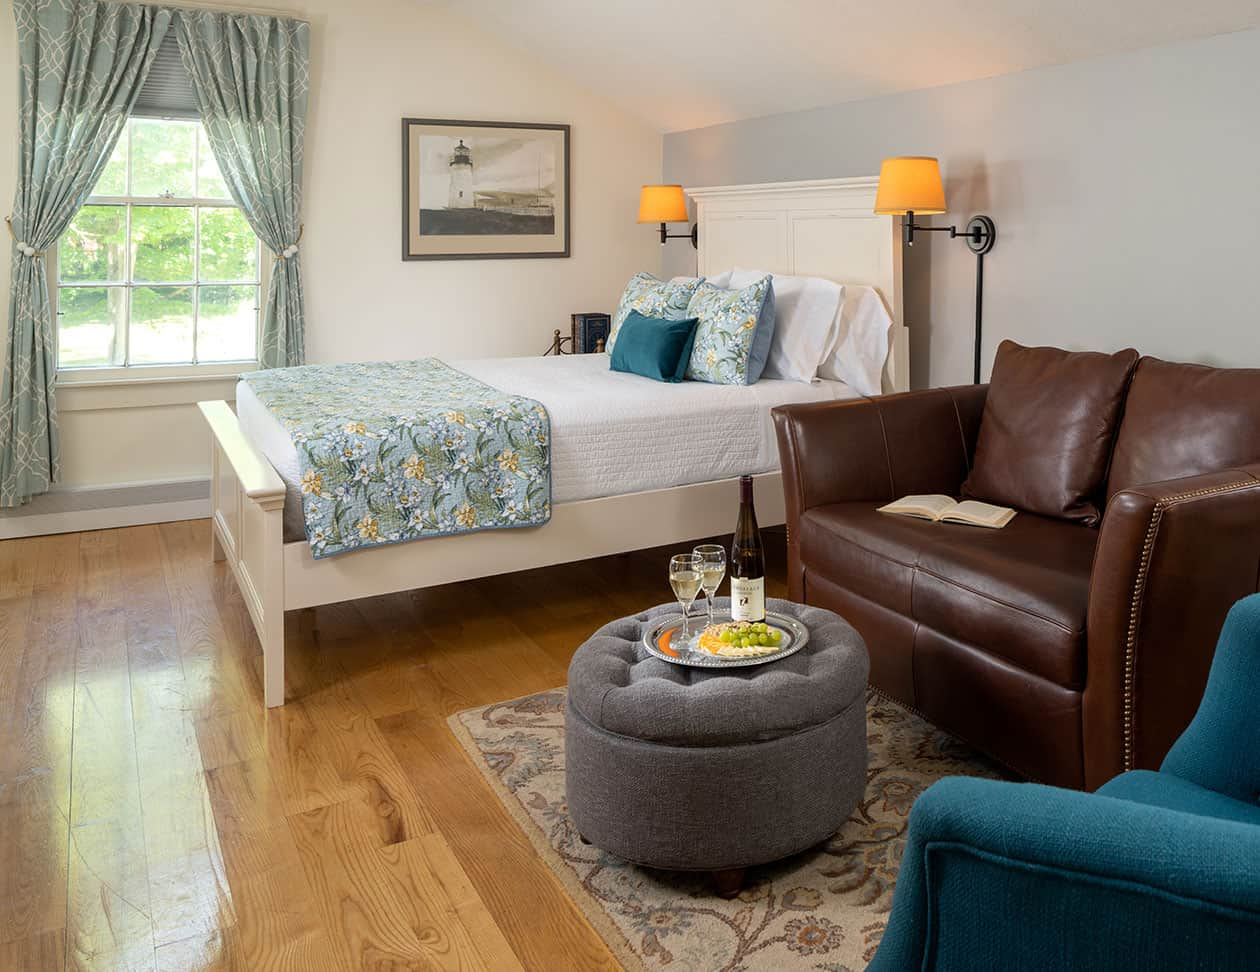 Bed by sitting area in the Wyeth room - Cooperstown, NY Inn